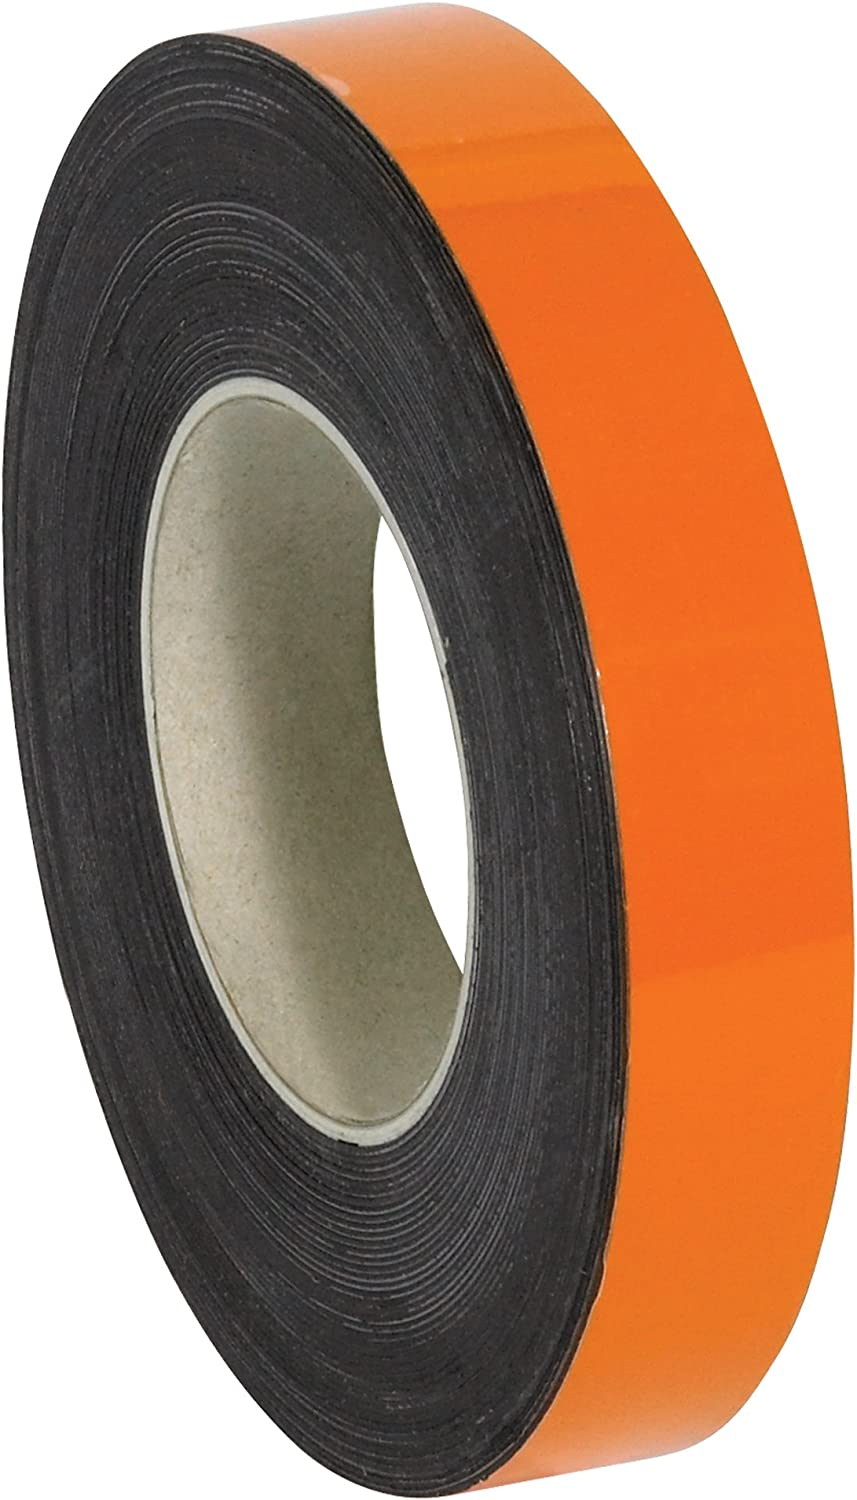 Poly Bag Guy Warehouse Labels Magnetic Rolls Max 70% OFF 50' 1